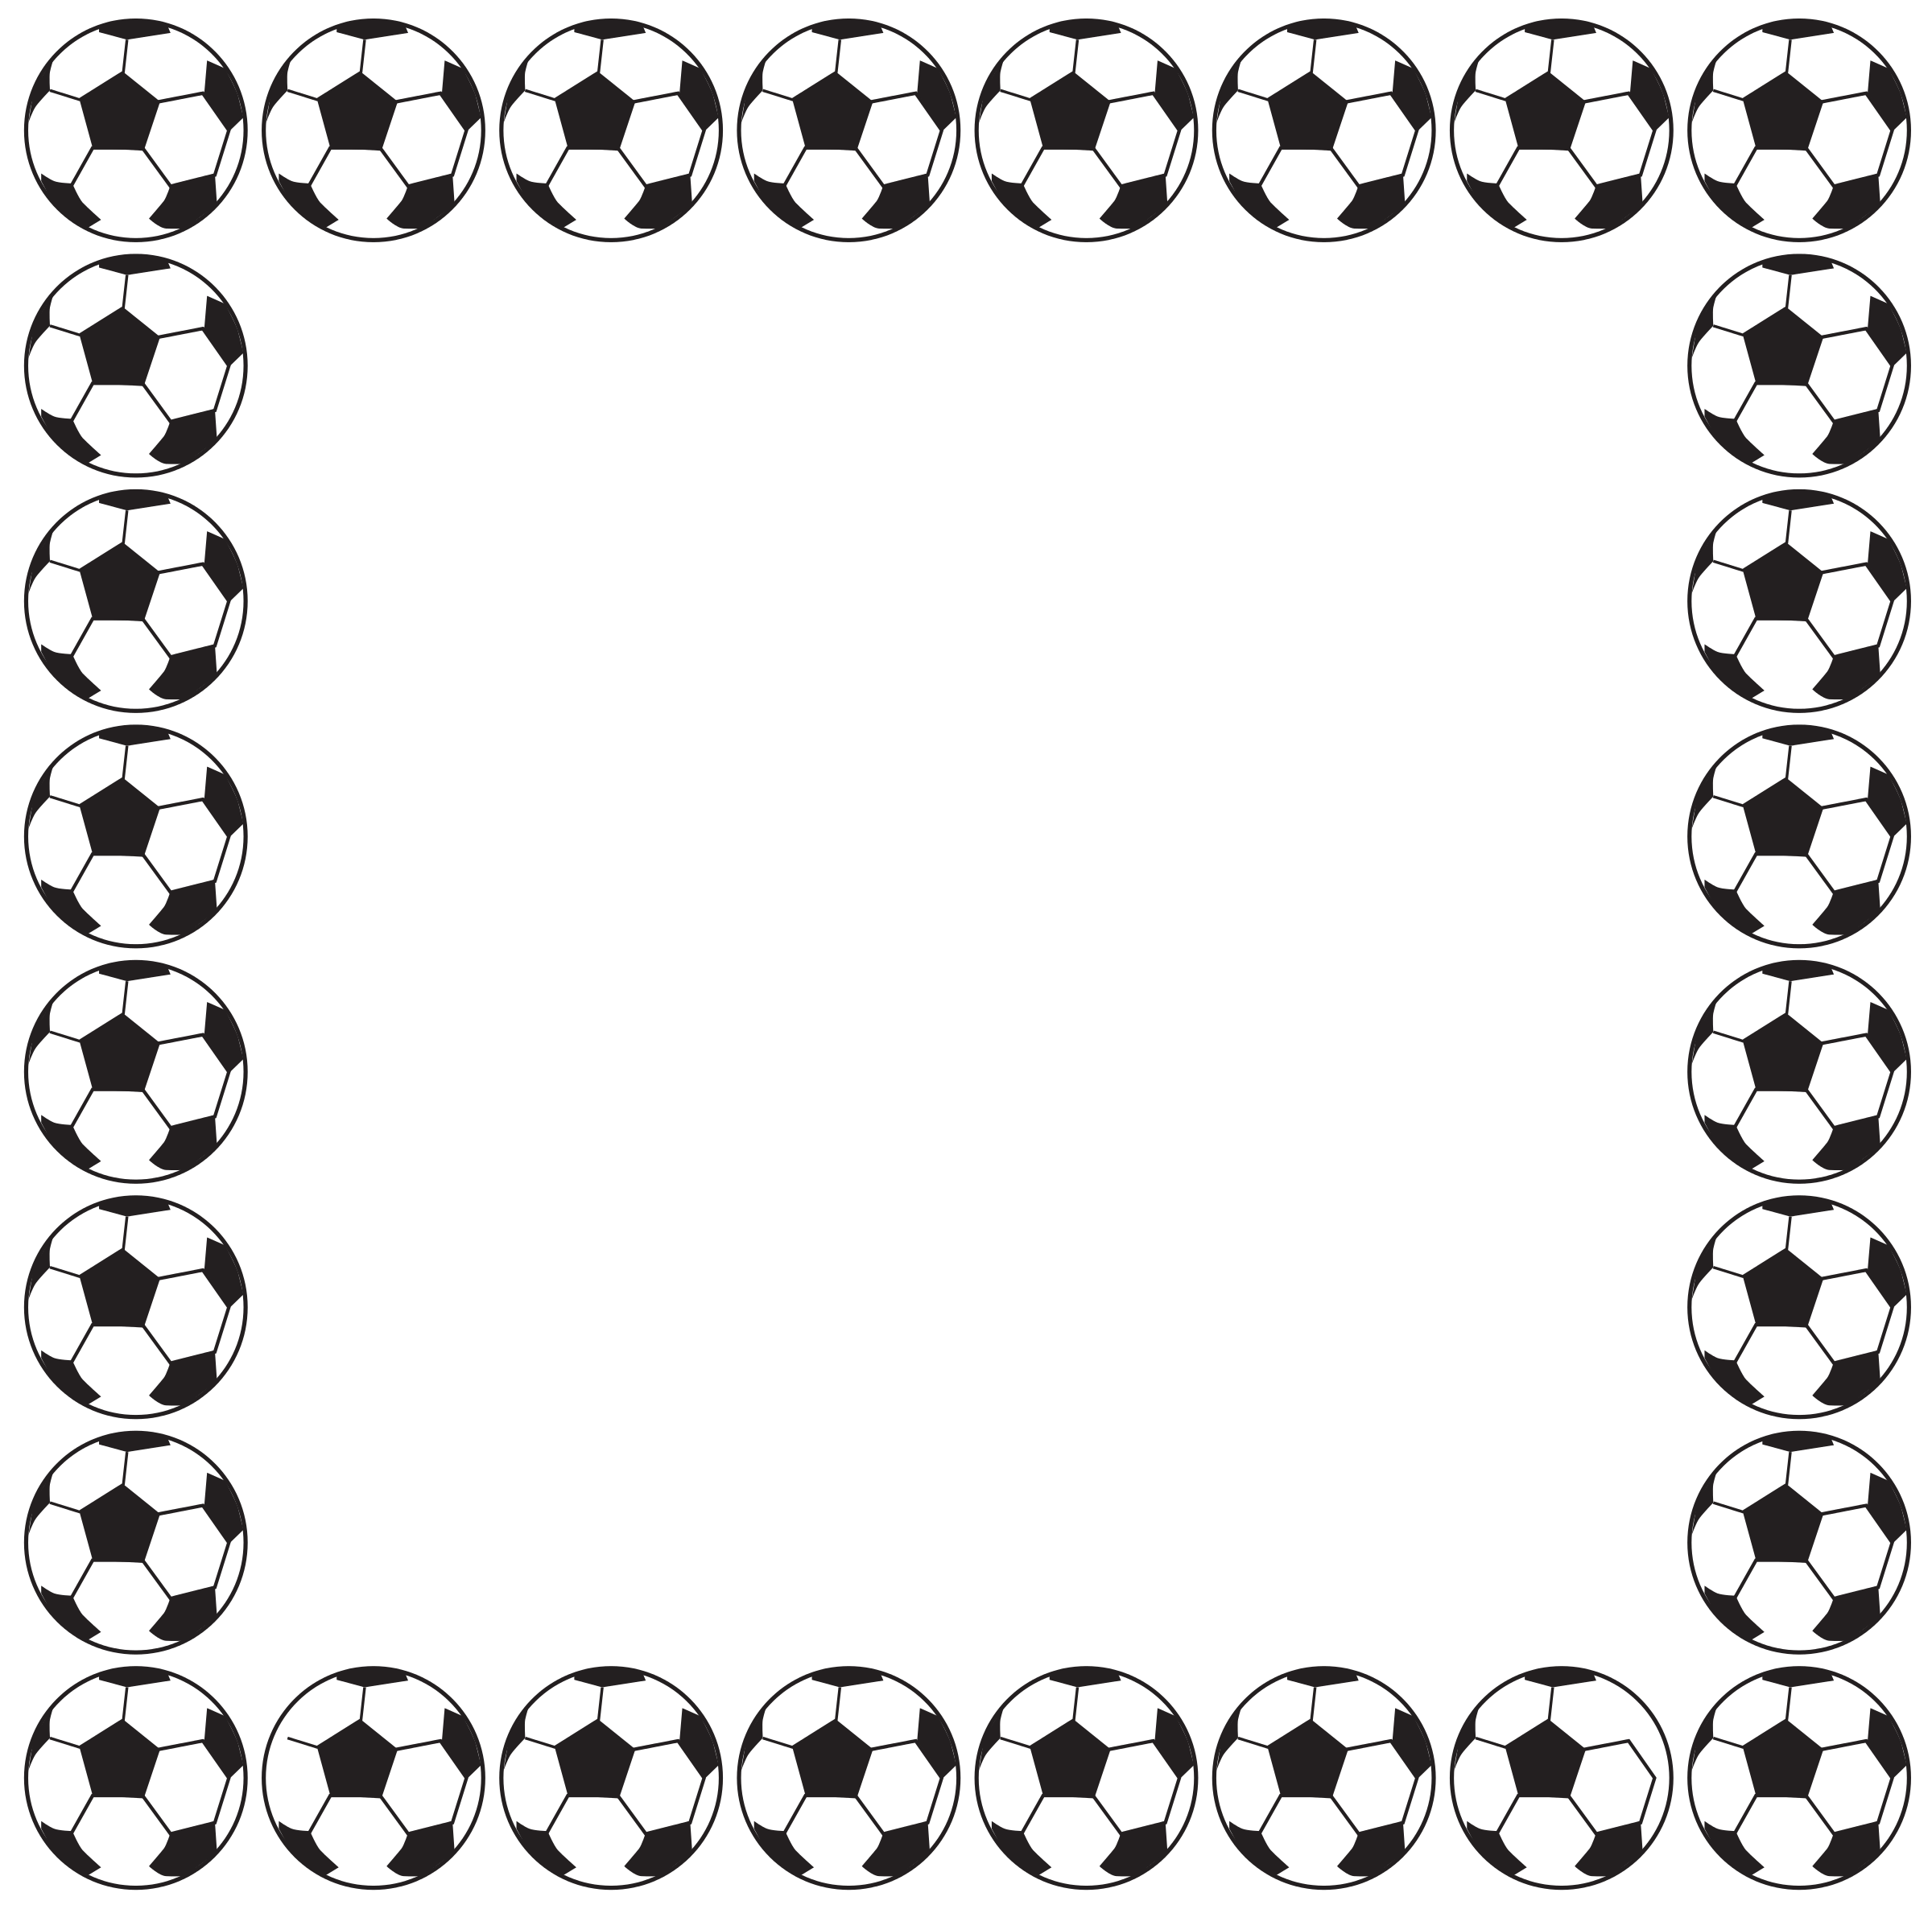 Free Football Borders, Download Free Clip Art, Free Clip